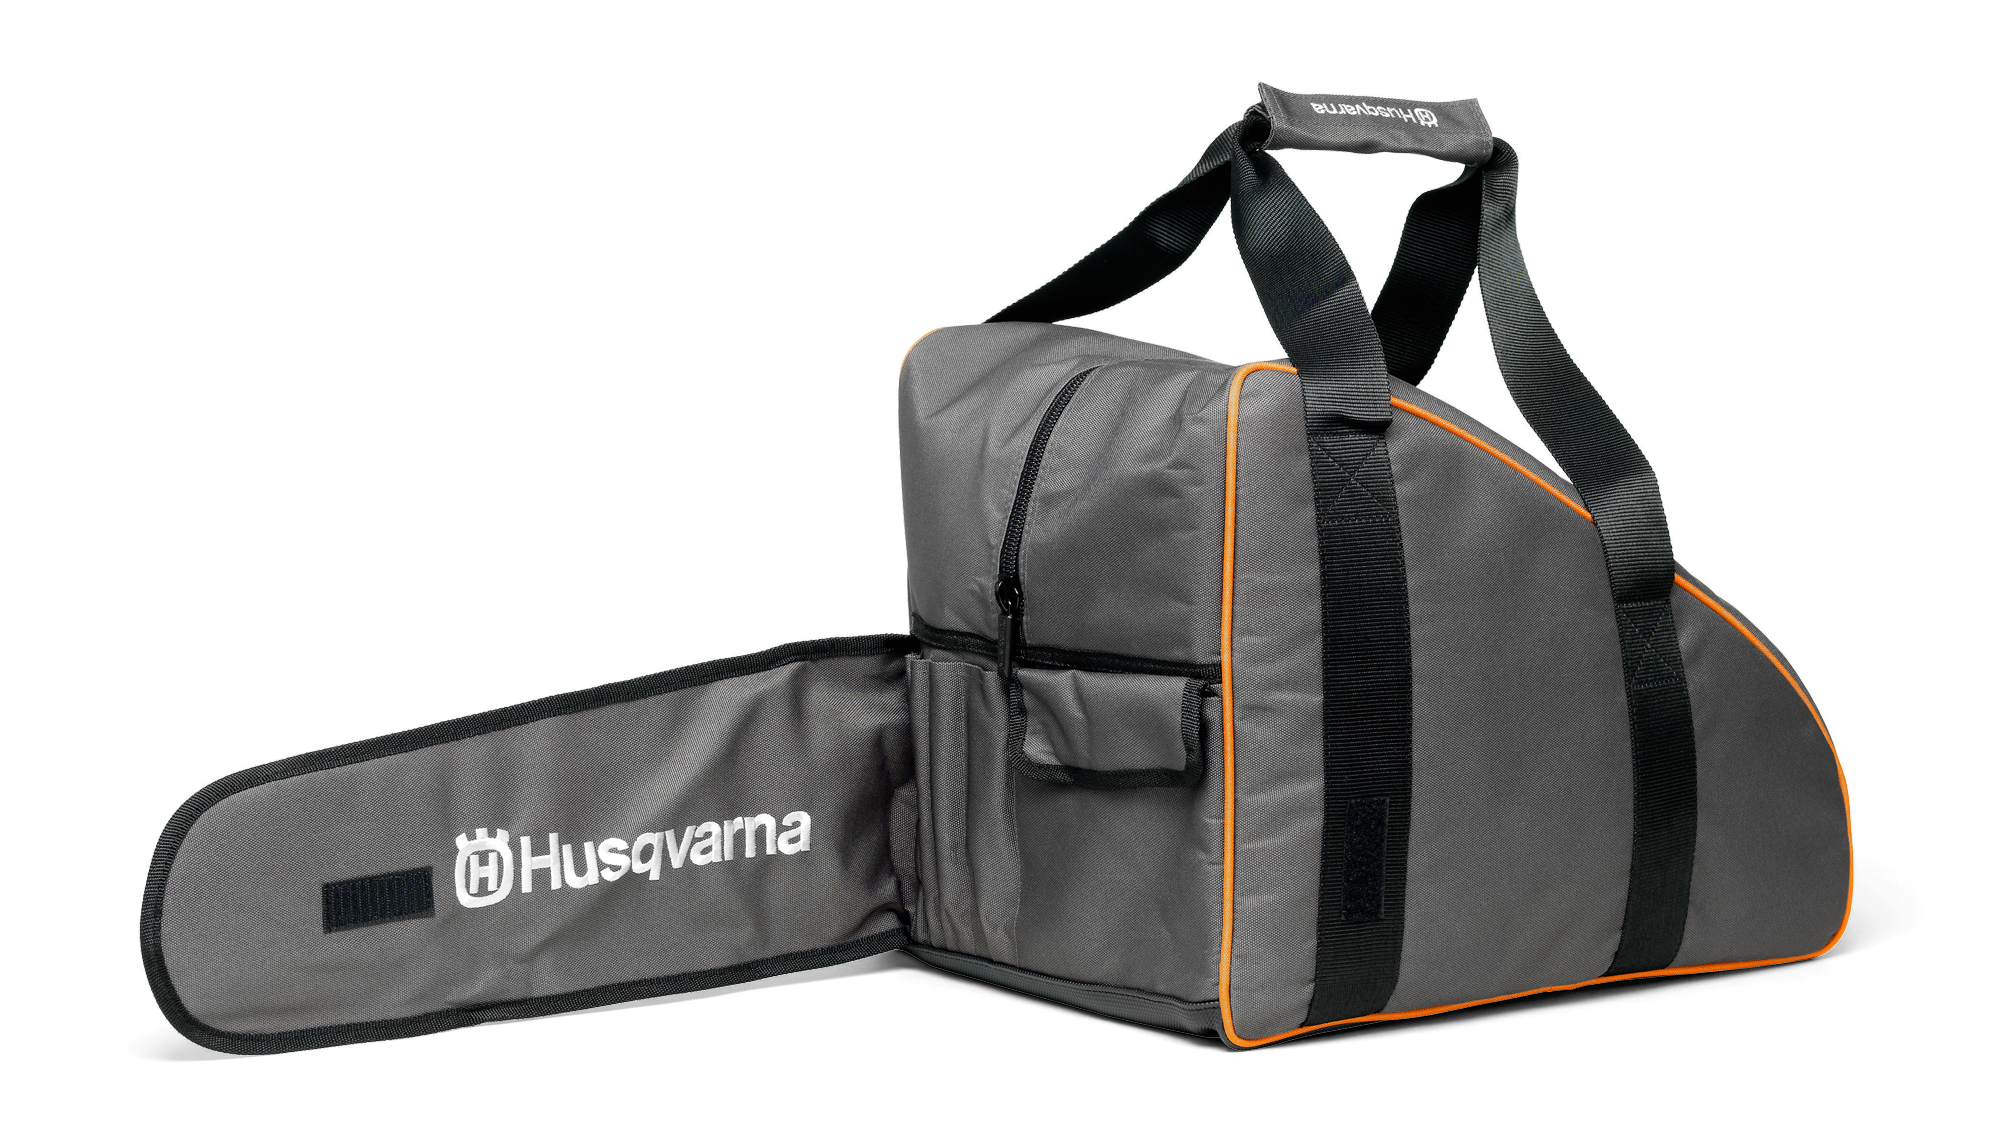 Image for Chainsaw Bag                                                                                                                     from HusqvarnaB2C